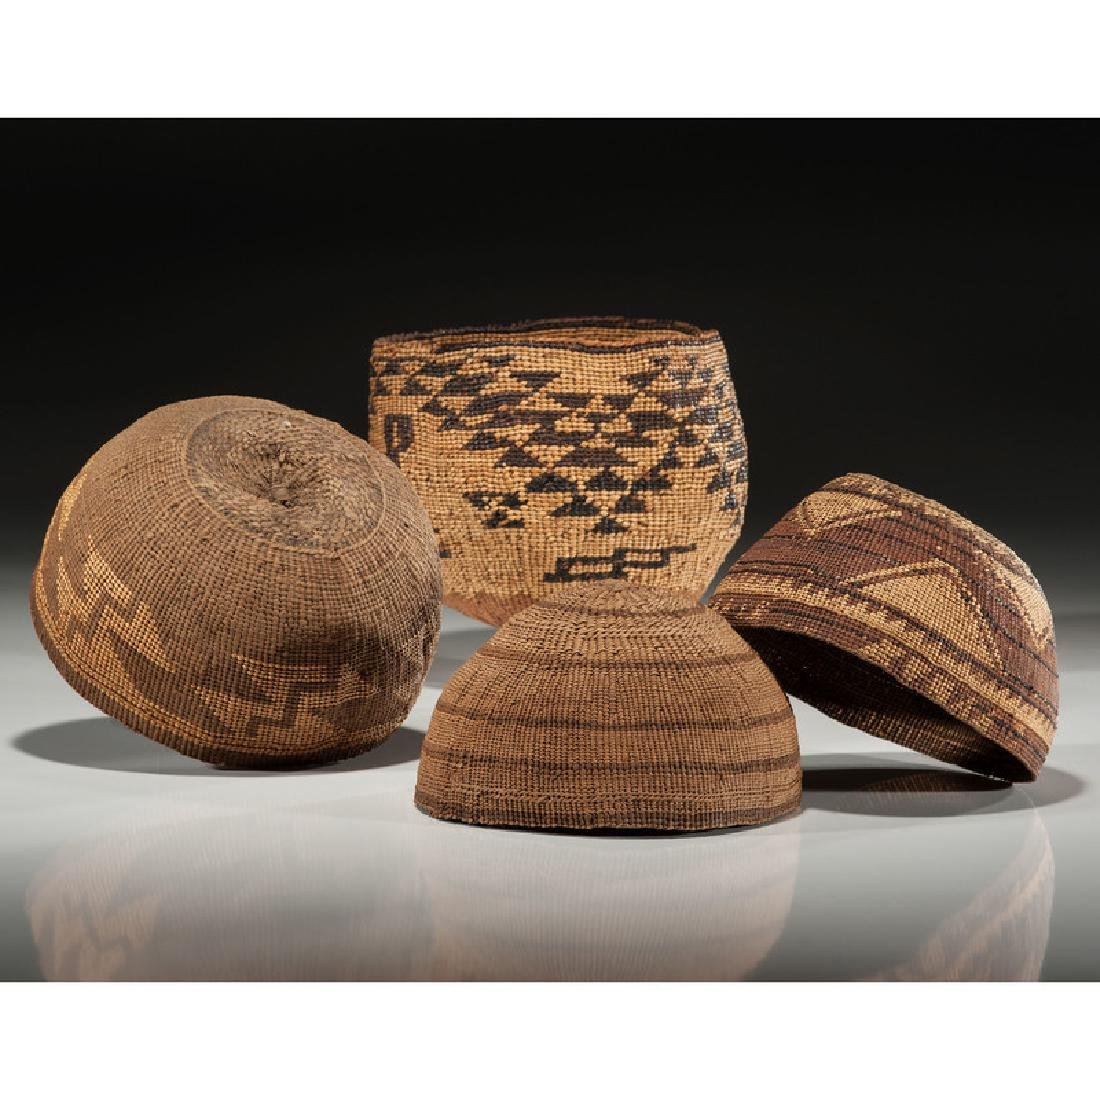 Northern California Hats and Baskets